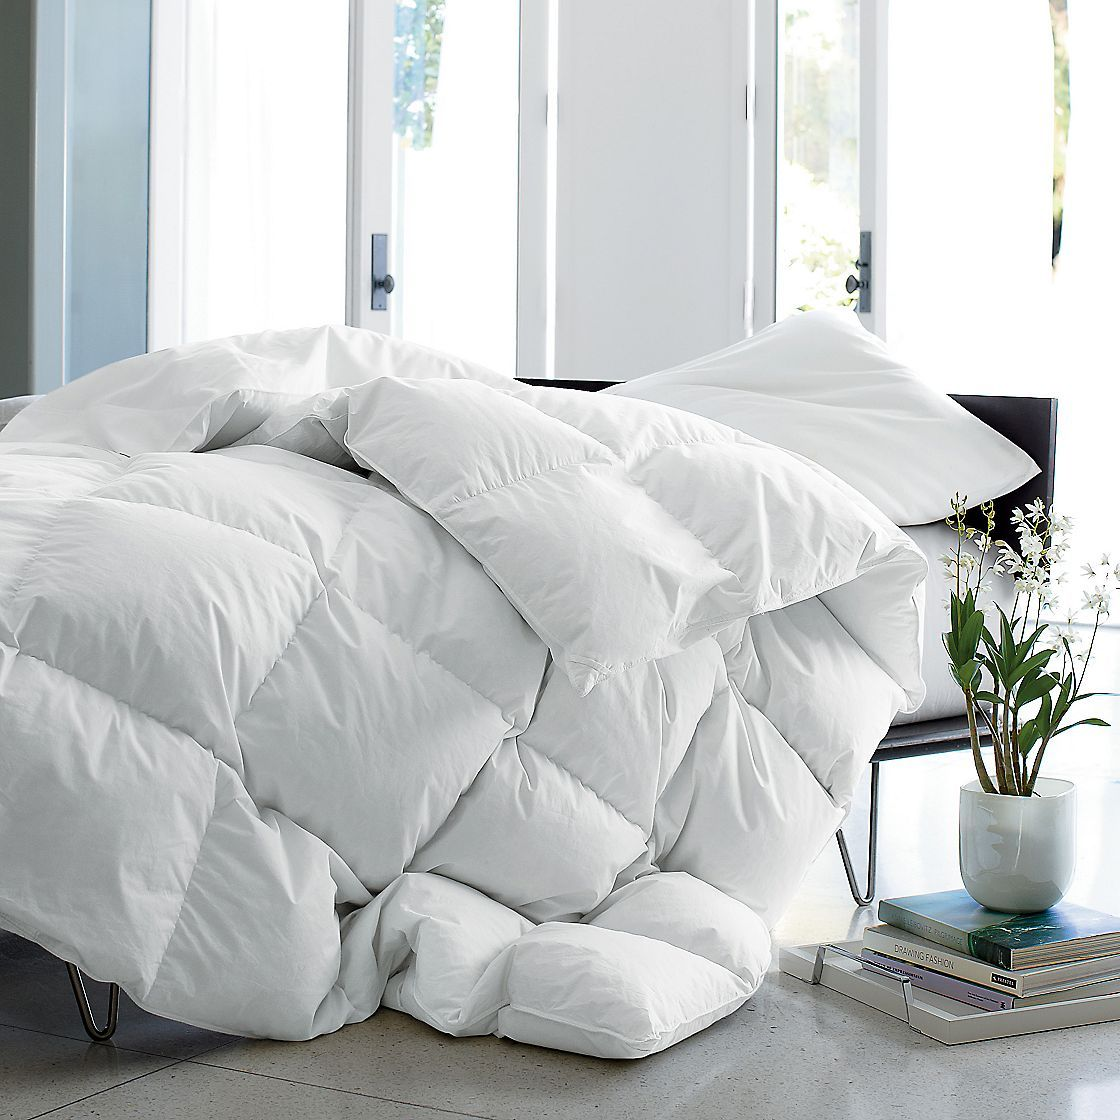 Voted Best Heavyweight Comforter By Real Simple Magazine Down Comforter Bedding Down Comforter White Down Comforter